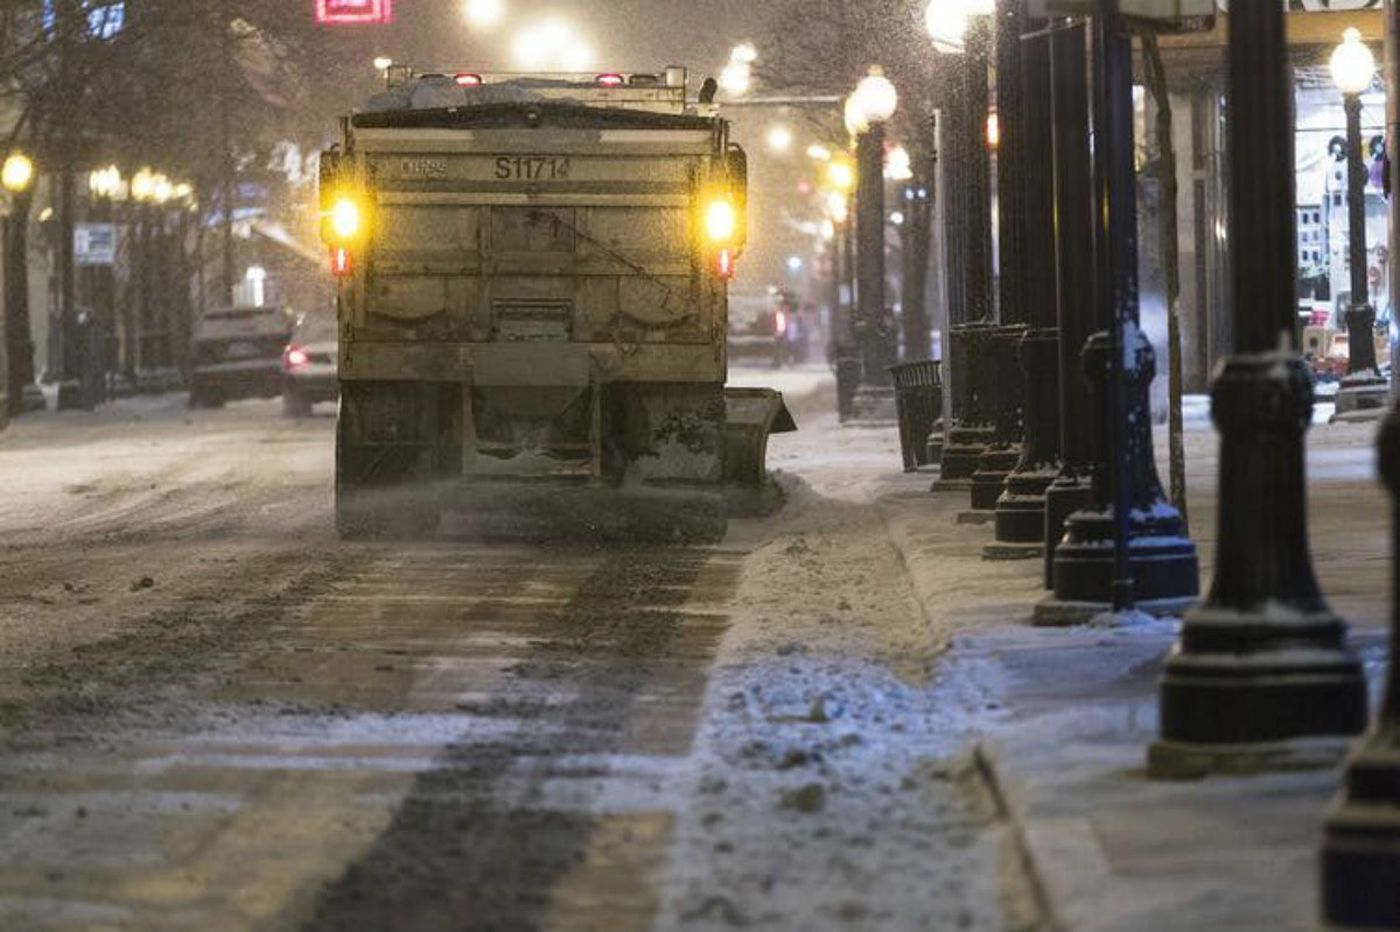 Snow is coming. Should we rethink using salt on the roads?